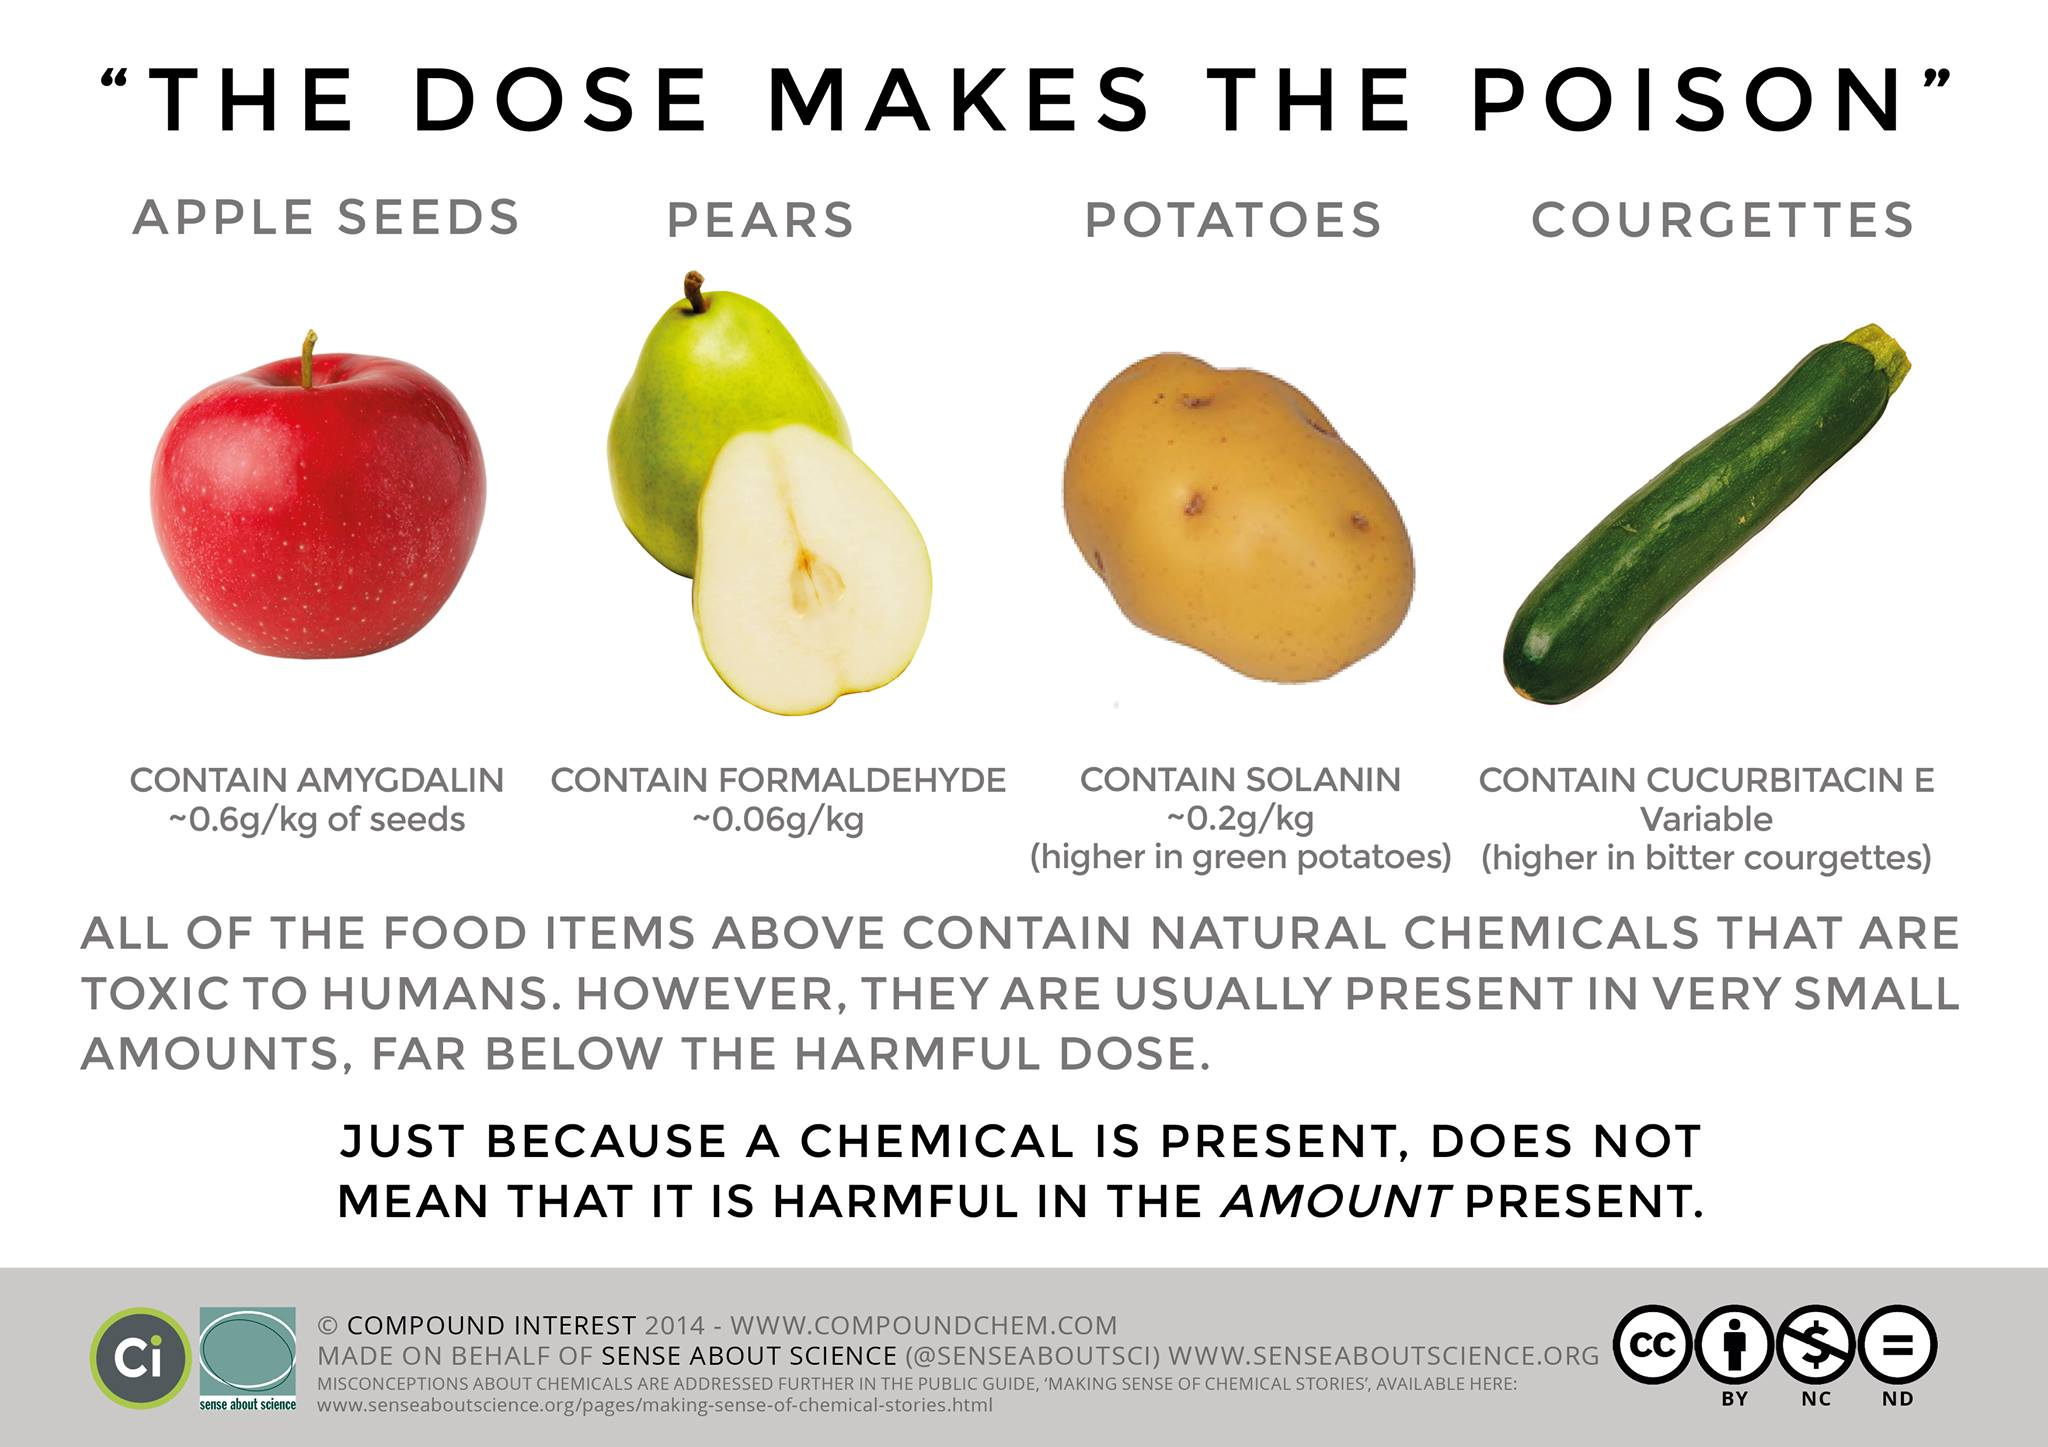 the dose makes the poison, apple seeds, pears, potatoes, courgettes